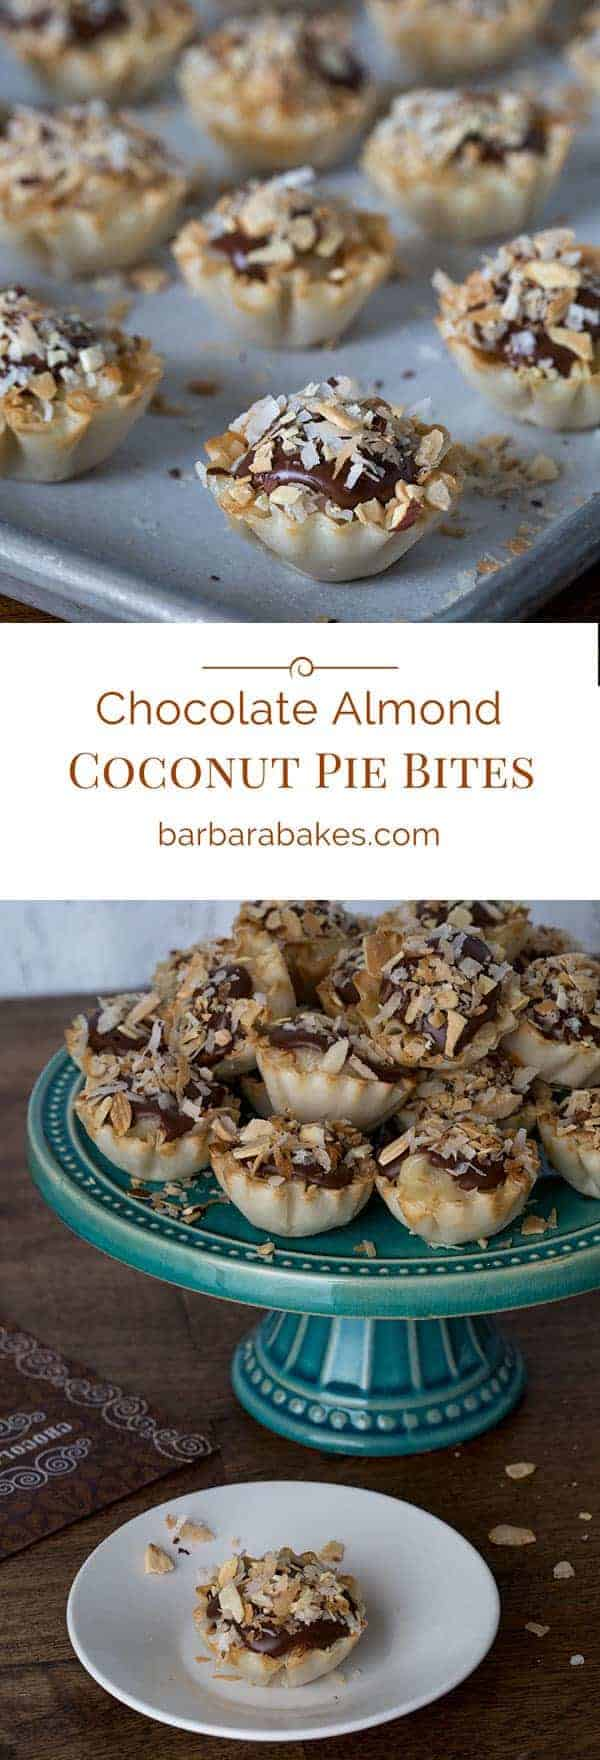 titled photo collage (and shown): Chocolate Almond Coconut Pie Bites